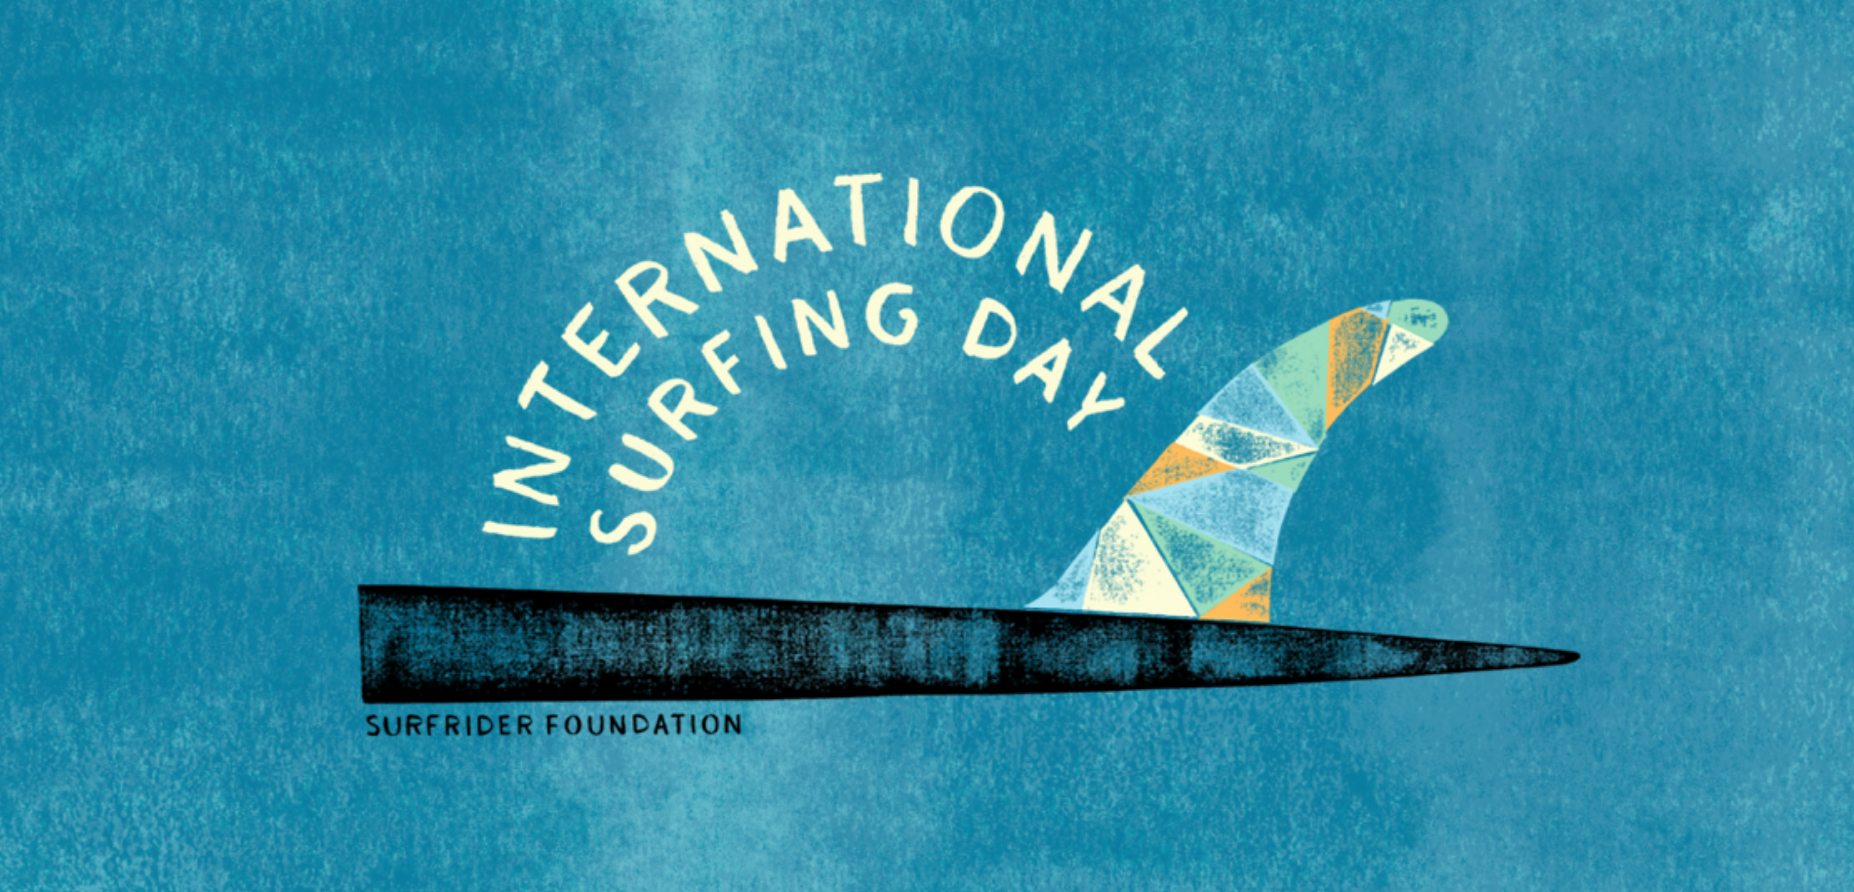 Surfrider Foundation International Surfing Day 2018